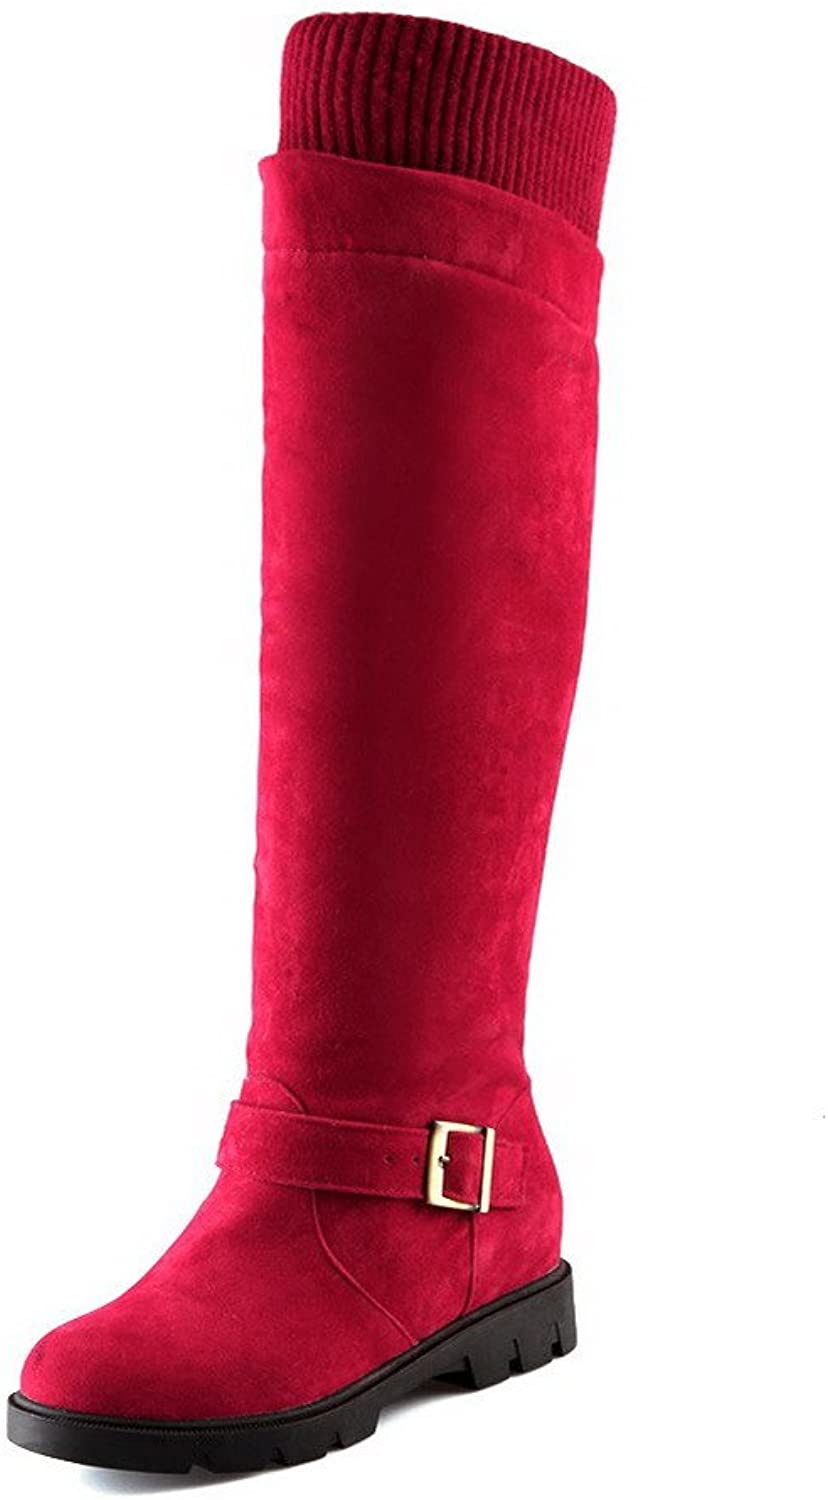 AllhqFashion Women's Frosted Round Closed Toe Kitten Heels Pull On Solid Boots